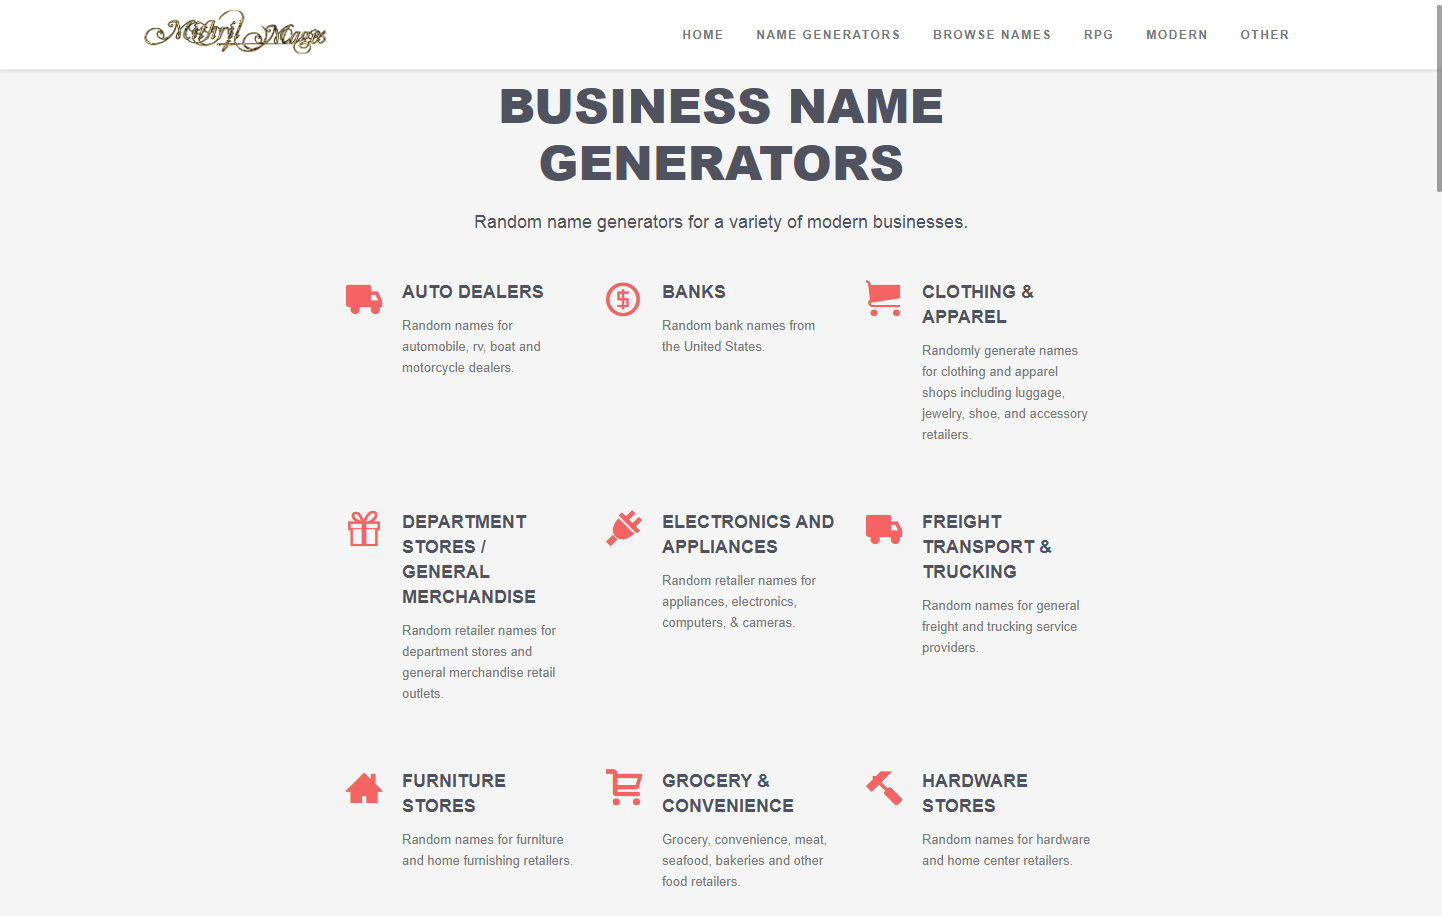 mithril-and-mages-business-name-generators